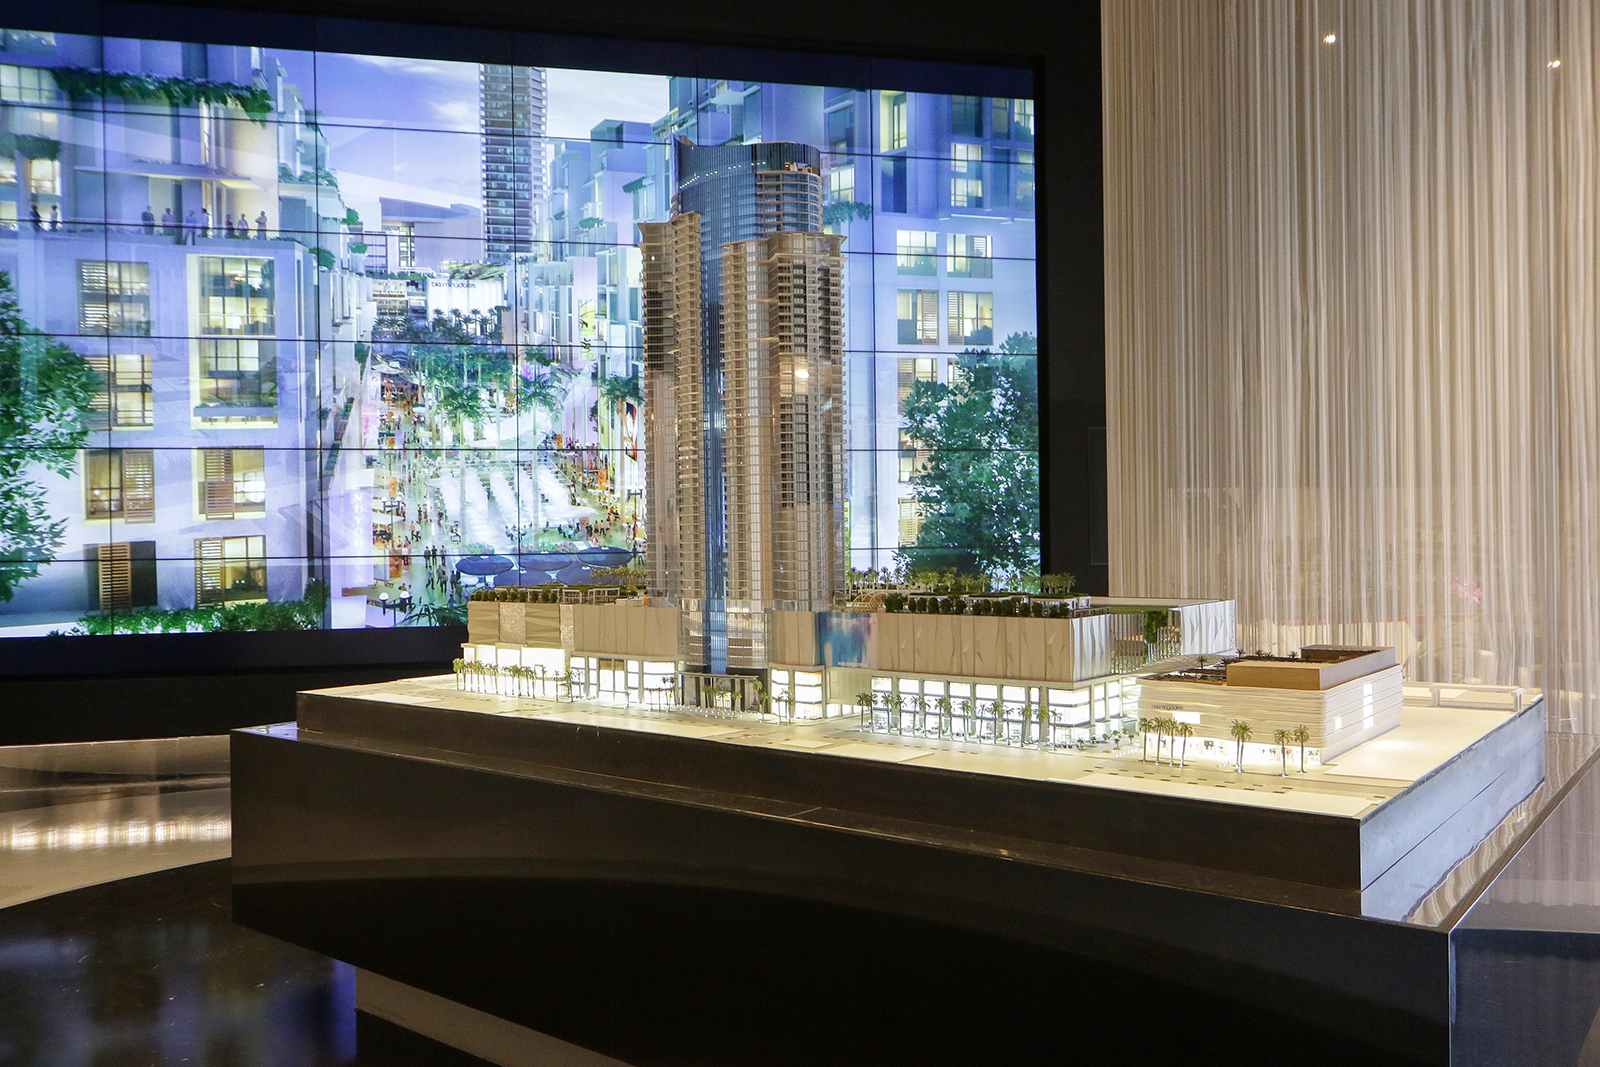 Planar Clarity Matrix LCD Video Wall Helps Sell Condominiums in